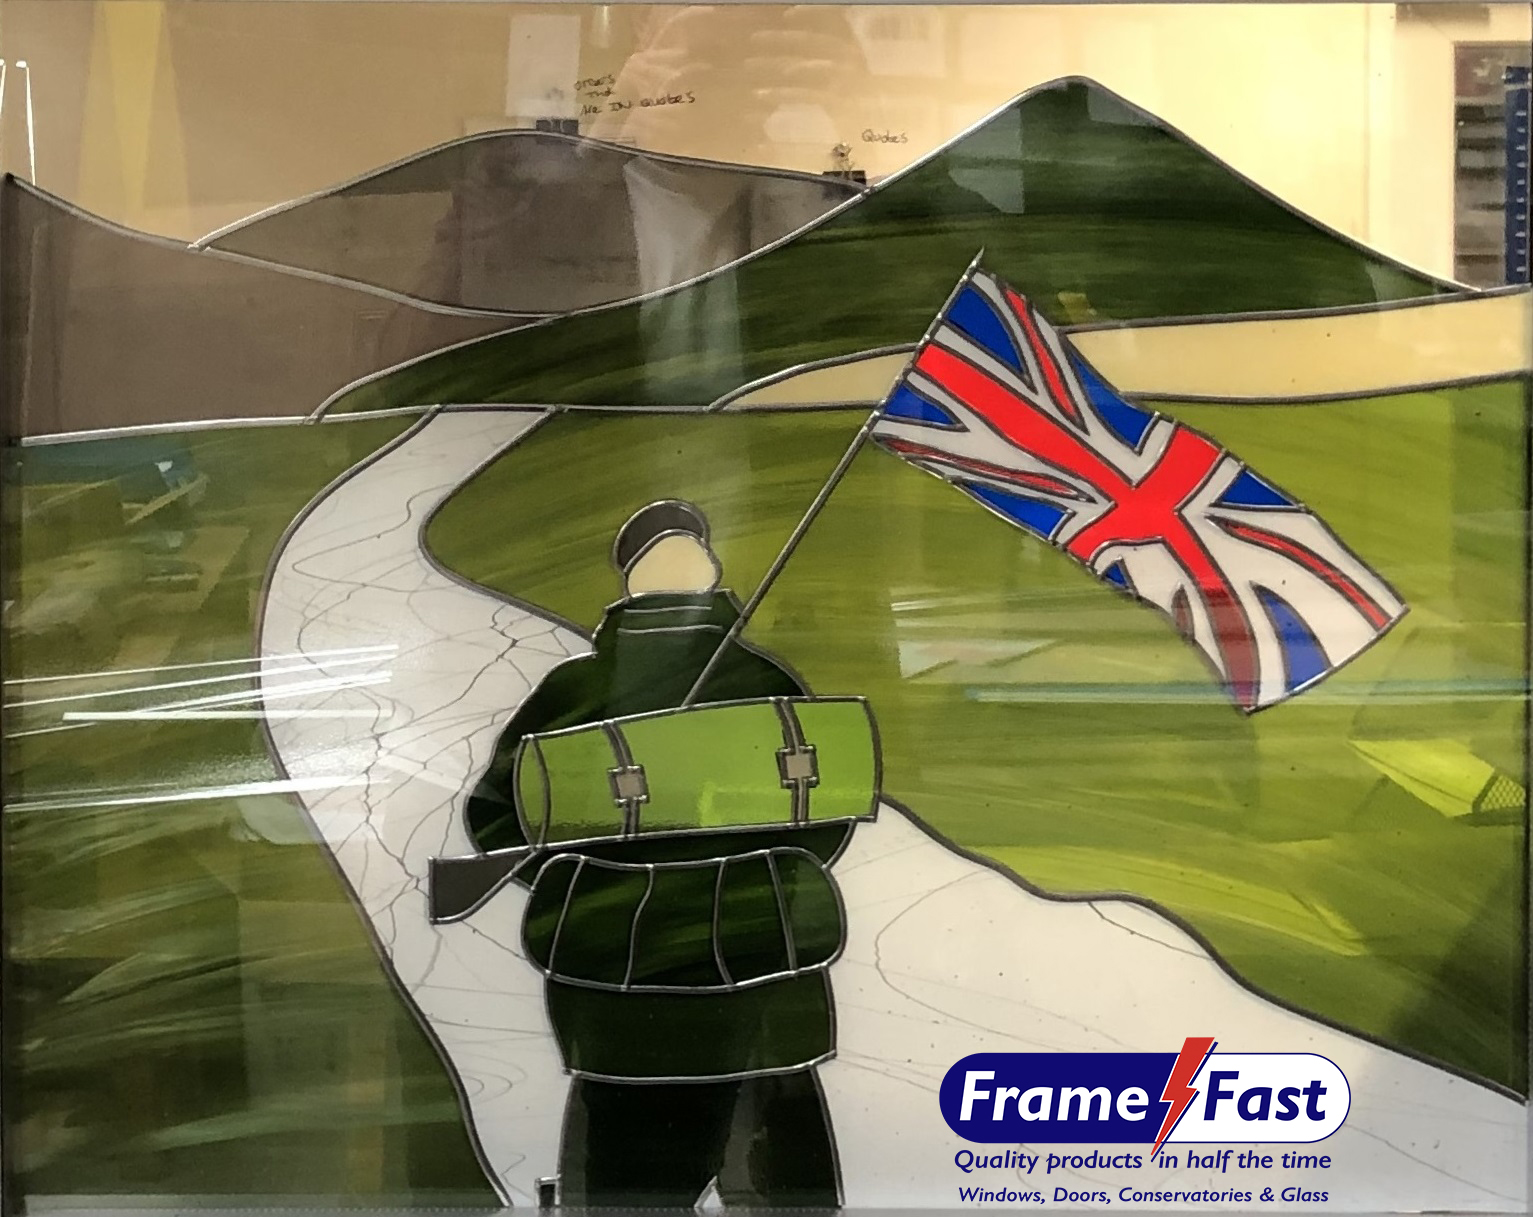 Stunning stained-glass window created by Frame Fast to mark the centenary of the end of the First World War